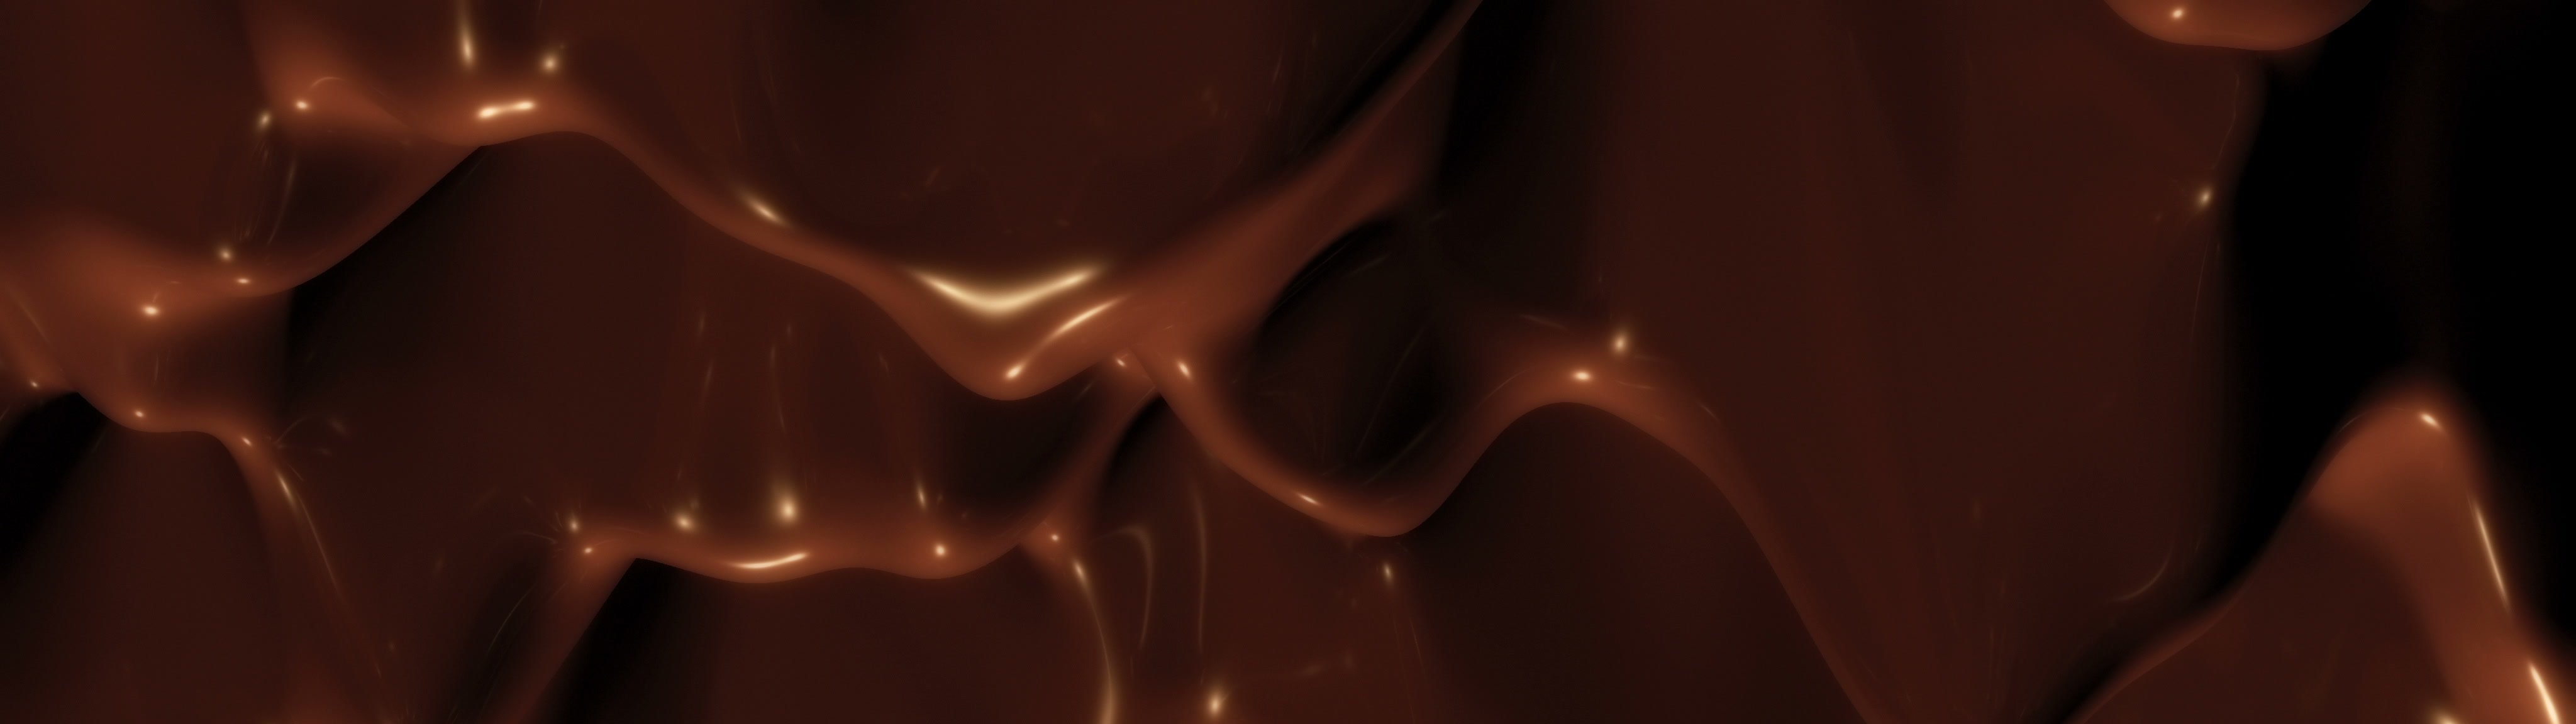 Liquid chocolate bacground. | Liquid chocolate bacground, 4k - Ultra HD. - ID:22864